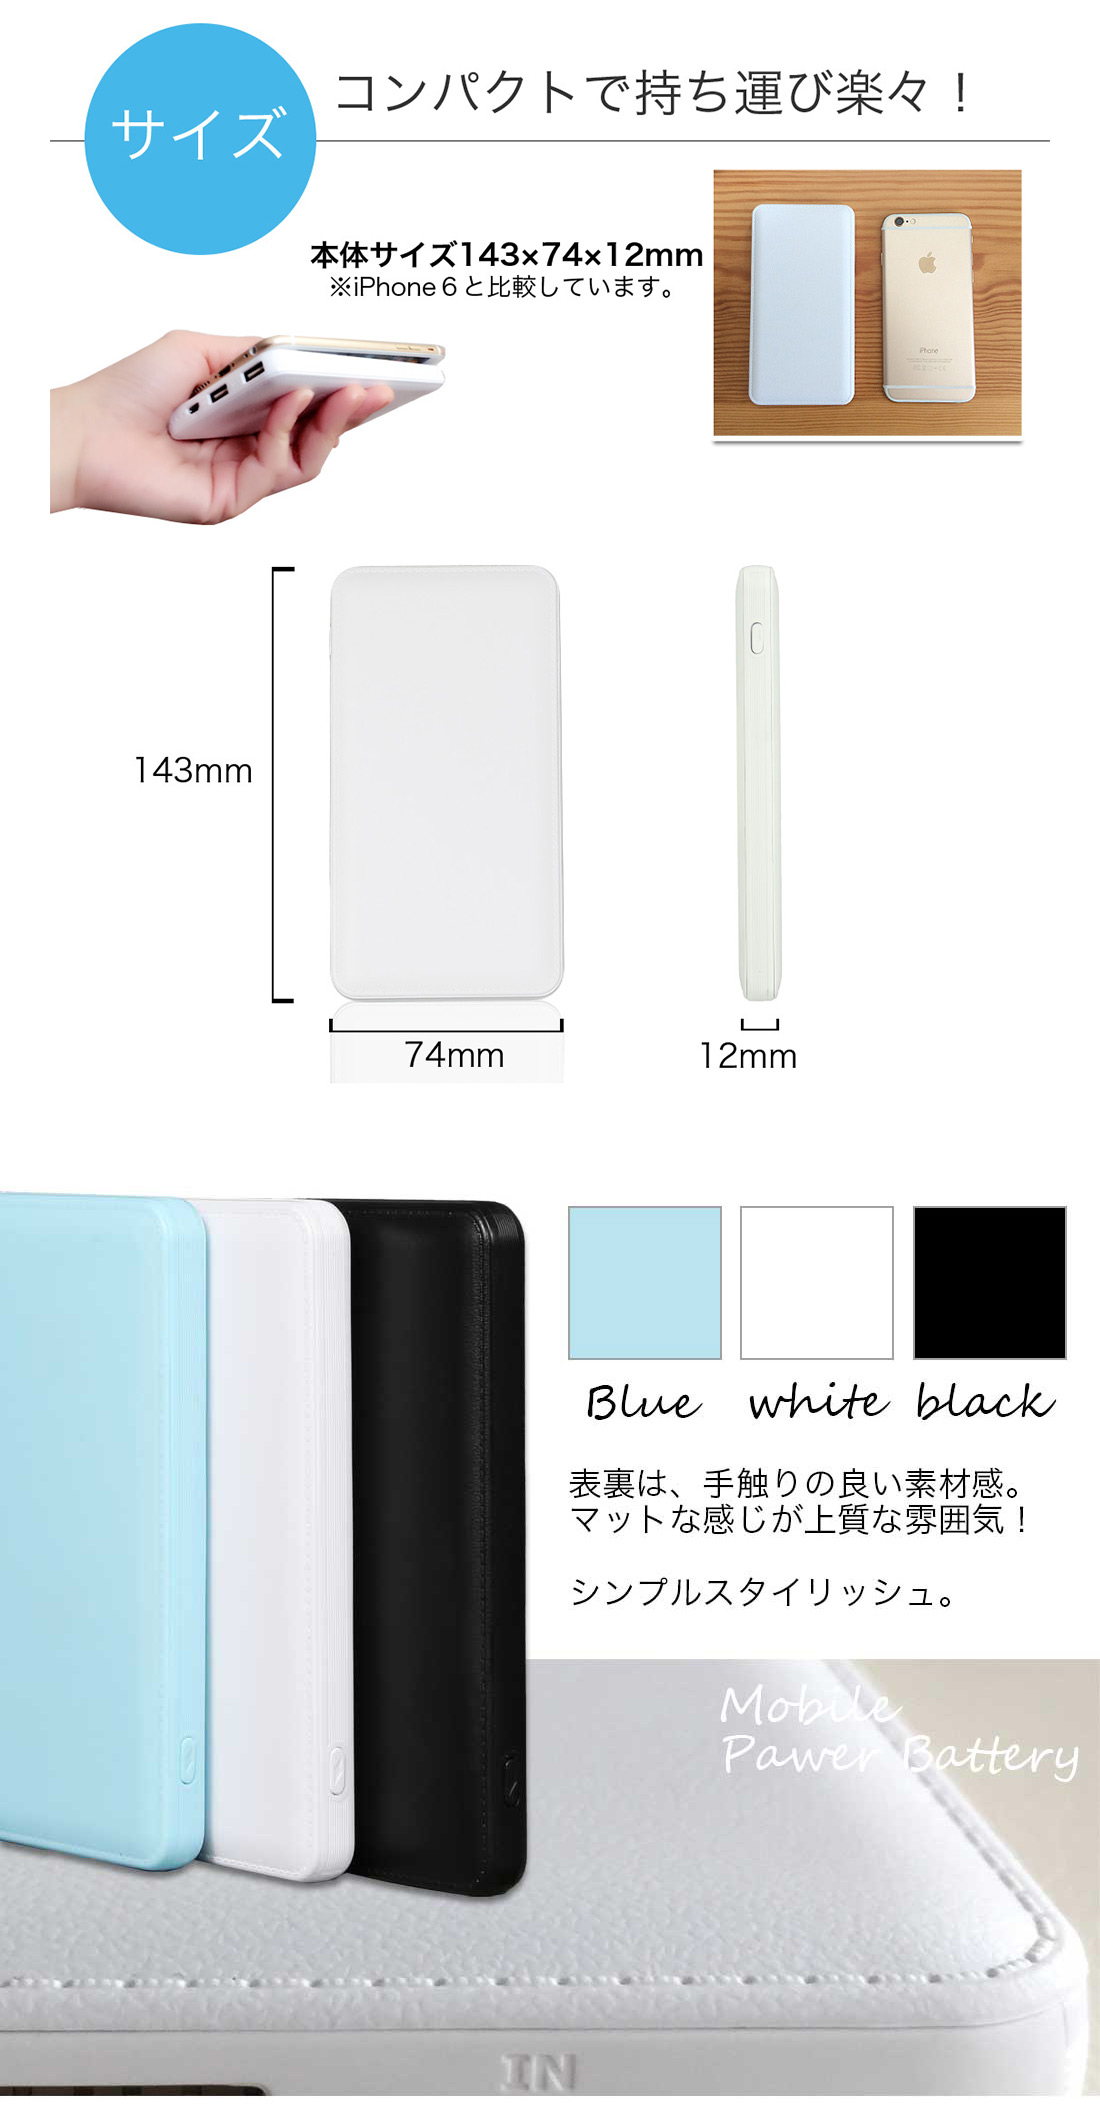 which is better iphone or android 楽天市場 ランキング1位 モバイルバッテリー 大容量 10000mah スマホ 充電器 バッテリー 4258